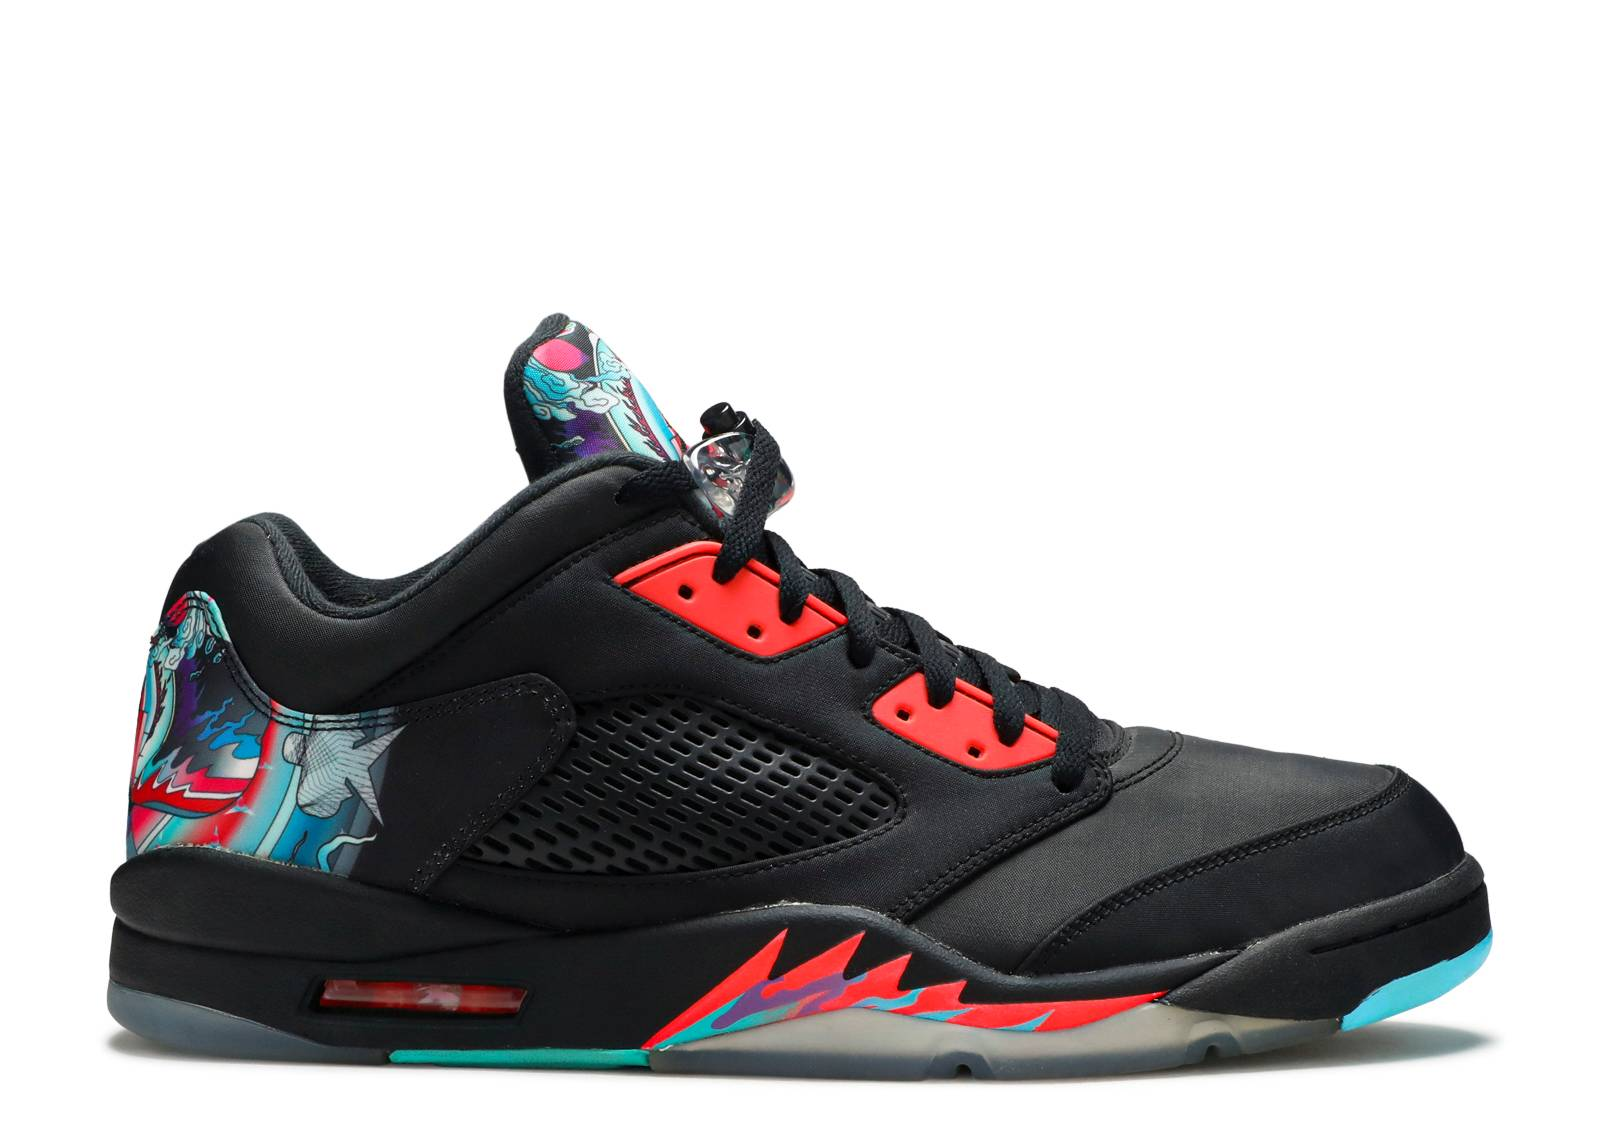 fded4d6f120 Air Jordan 5 Retro Low Cny